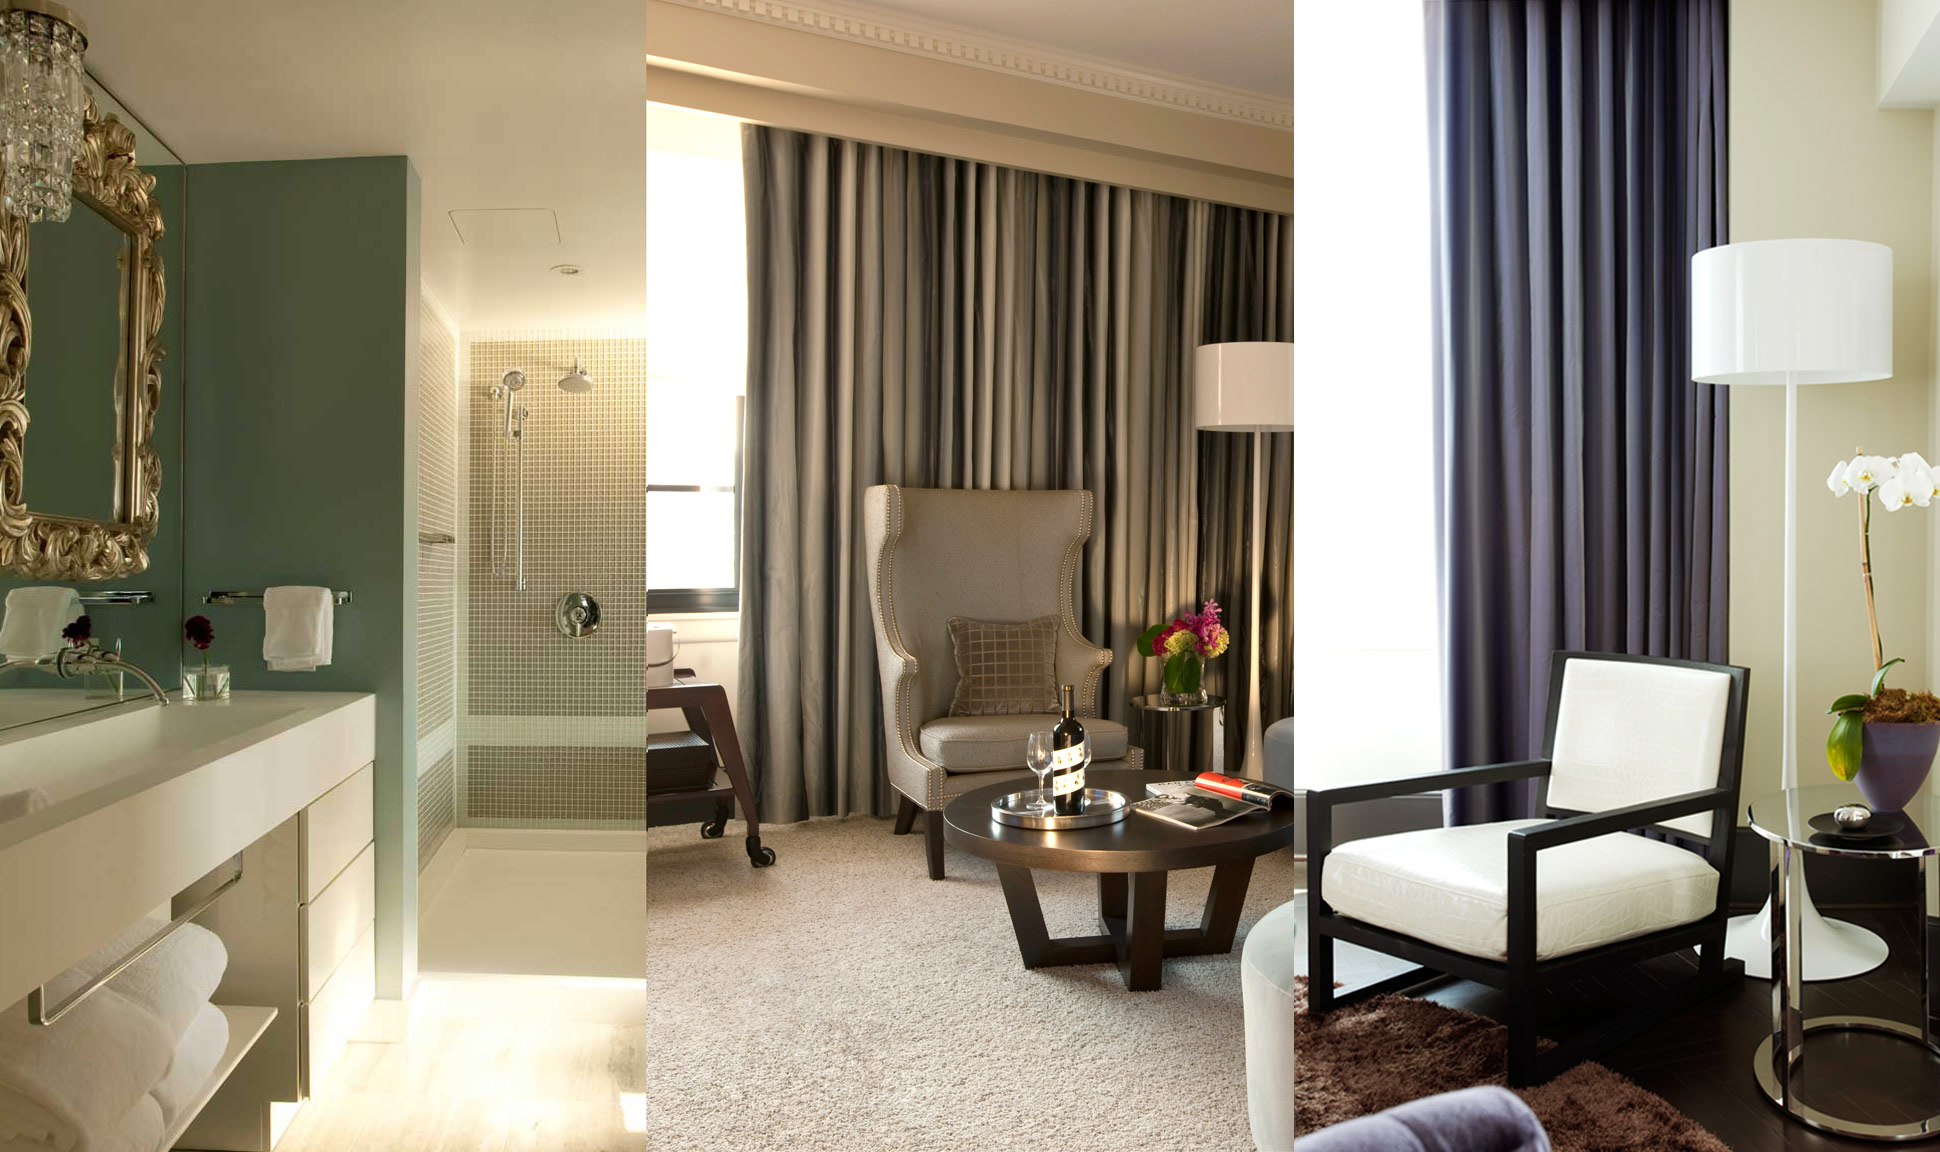 Visually the W Washington DC is a delicate balance of restraint and sensuality.